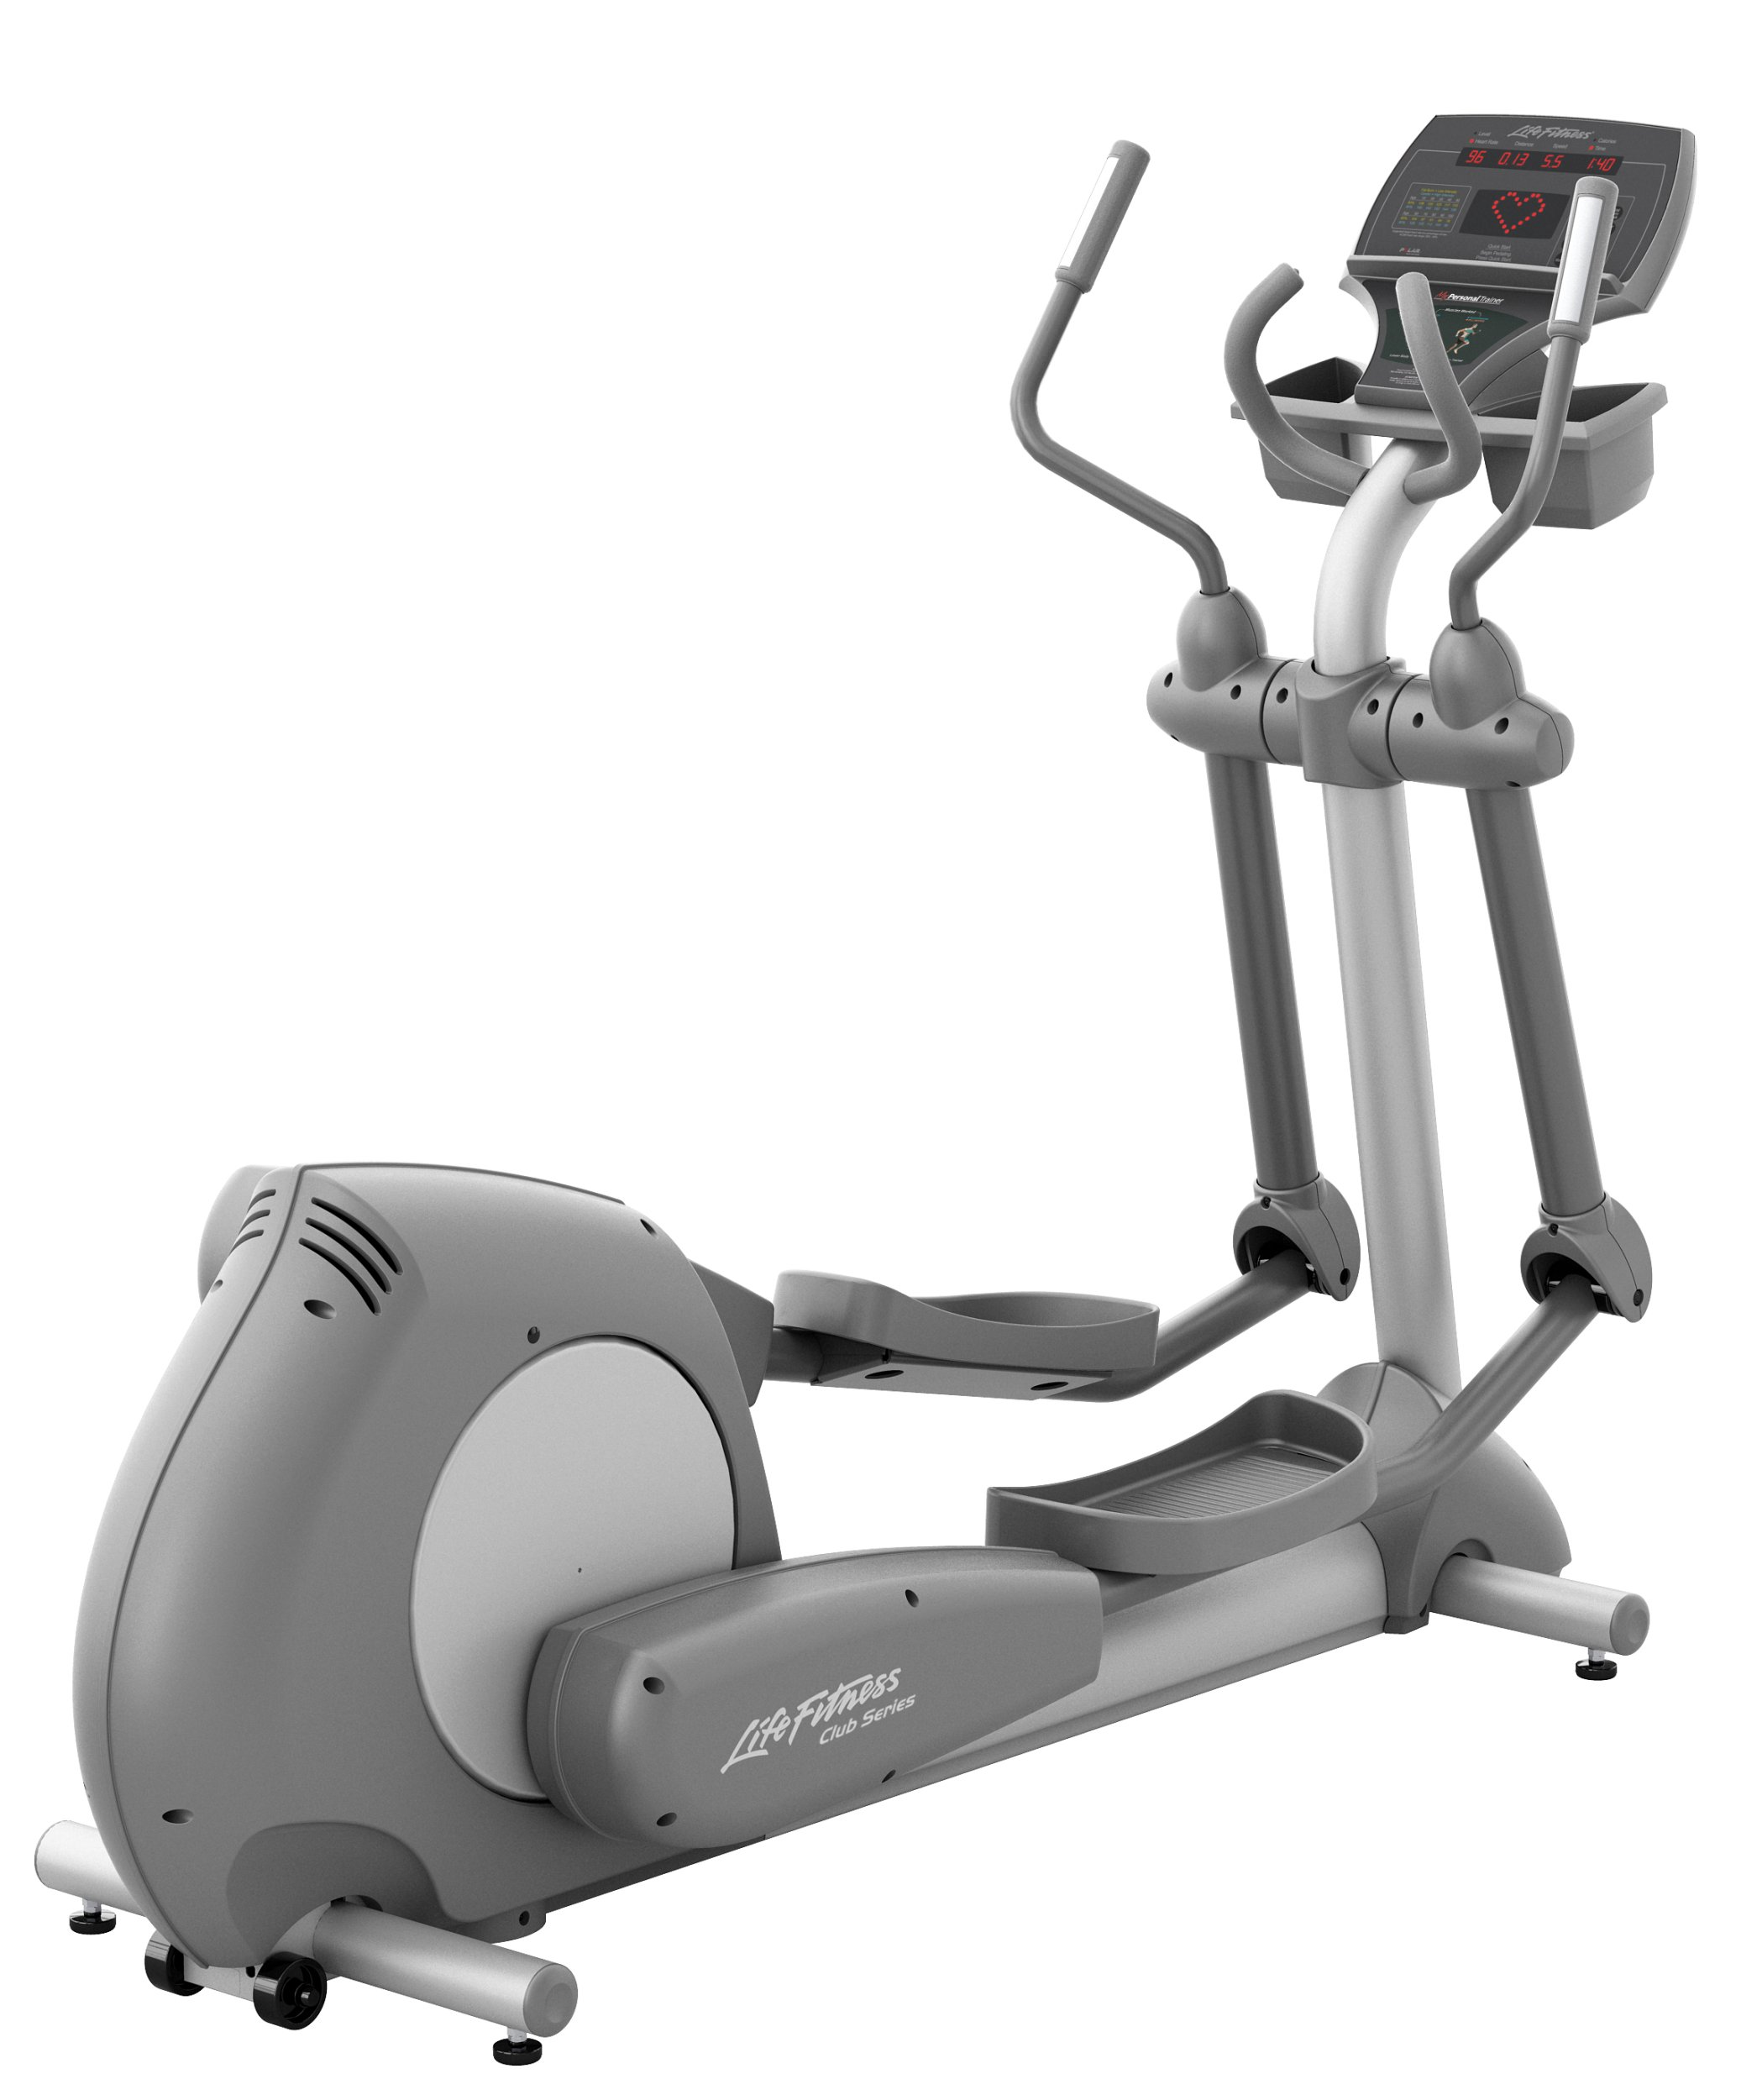 Life Fitness Club Series Elliptical Cross-Trainer by Life Fitness